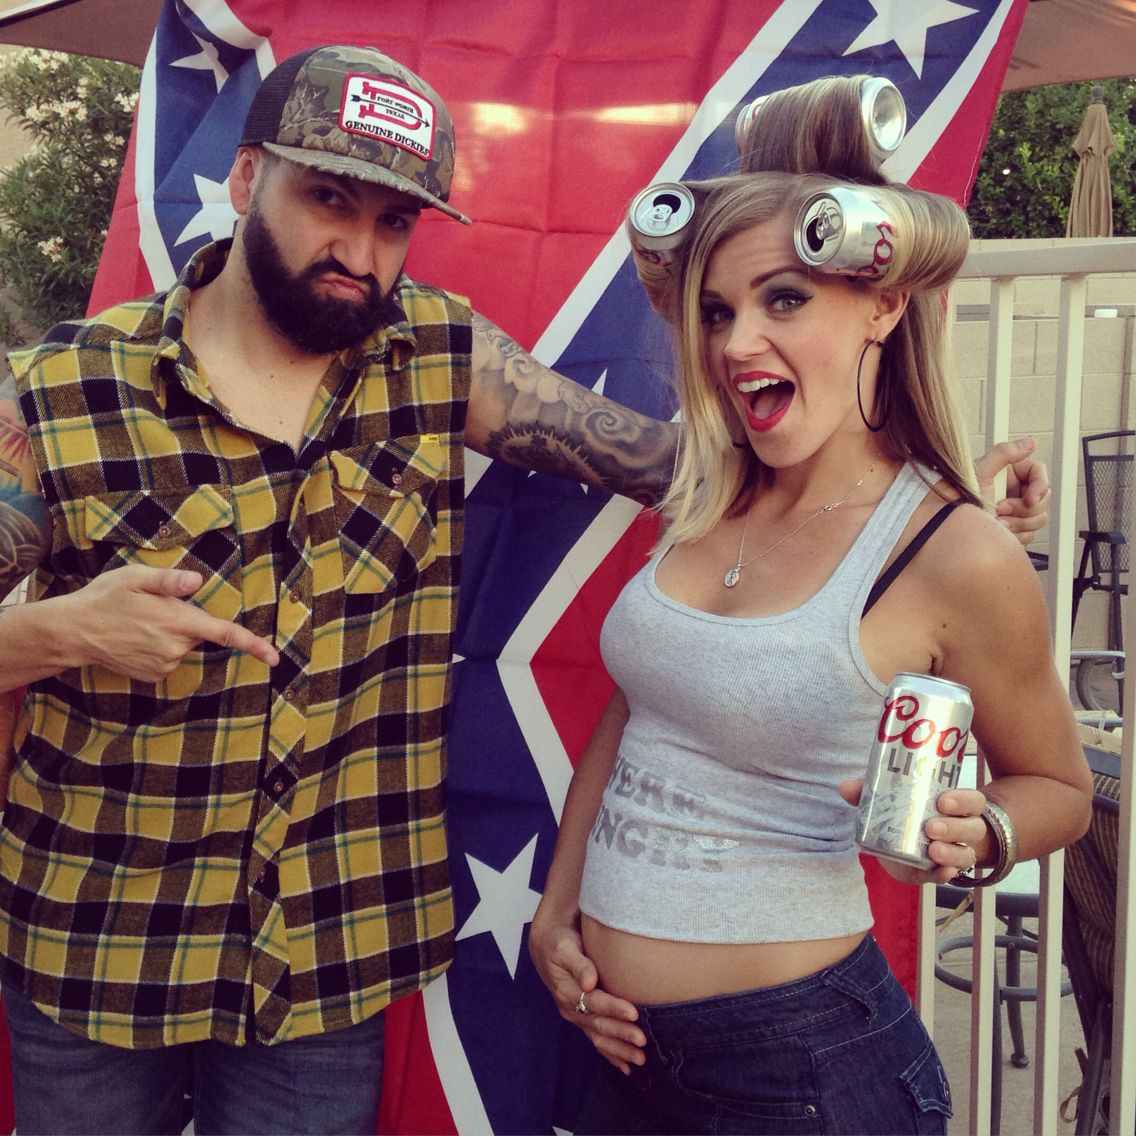 hillbilly redneck party beer can rollers were a hit